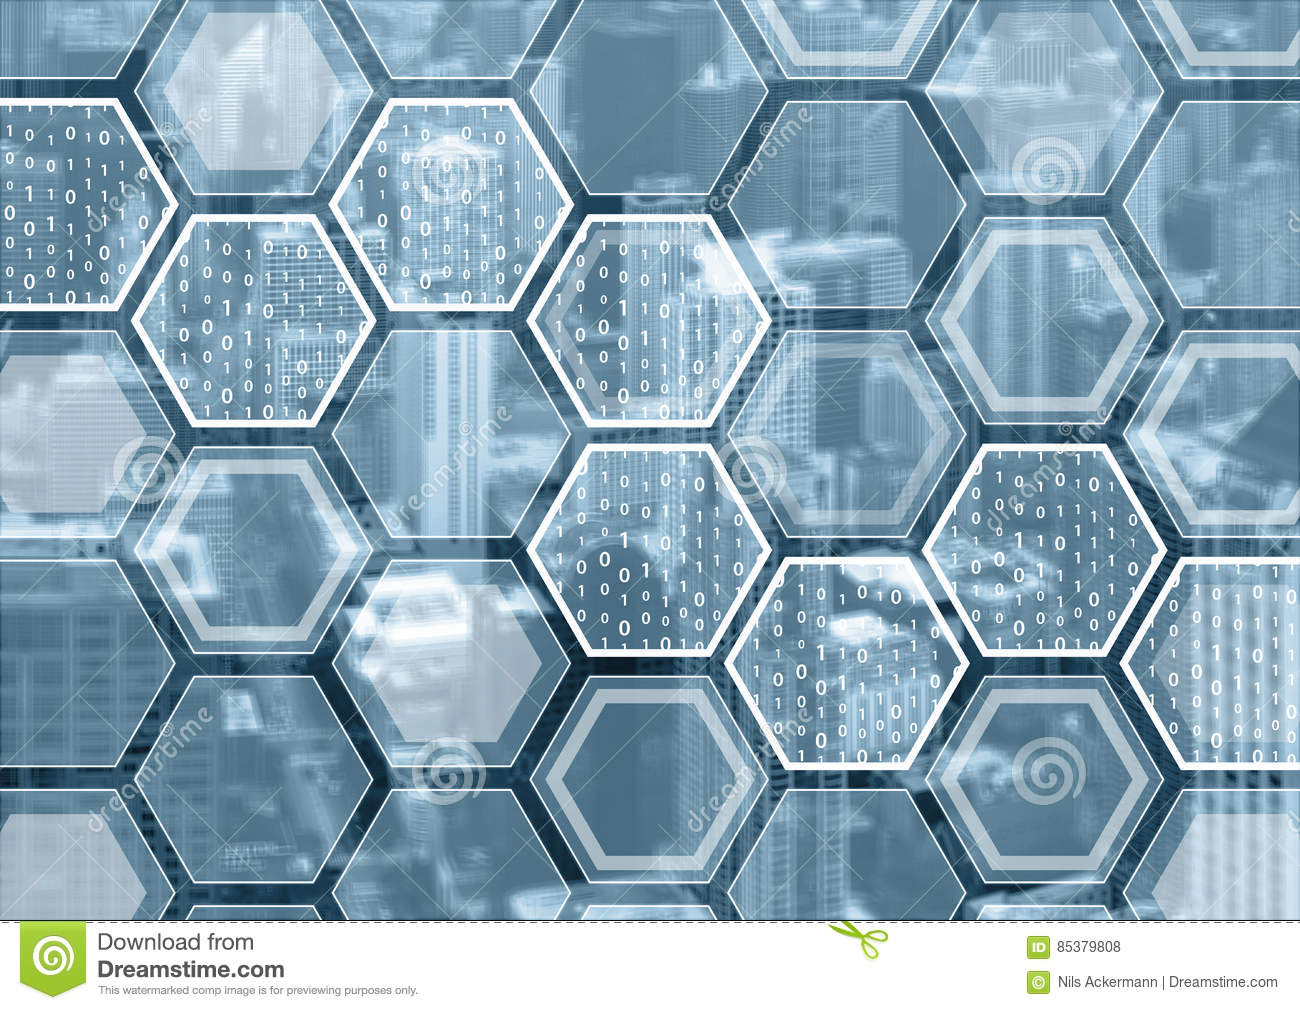 Download Blockchain Or Digitization Blue And Grey Background With Hexagonal Shaped Pattern Stock Photo - Image of city, block: 85379808